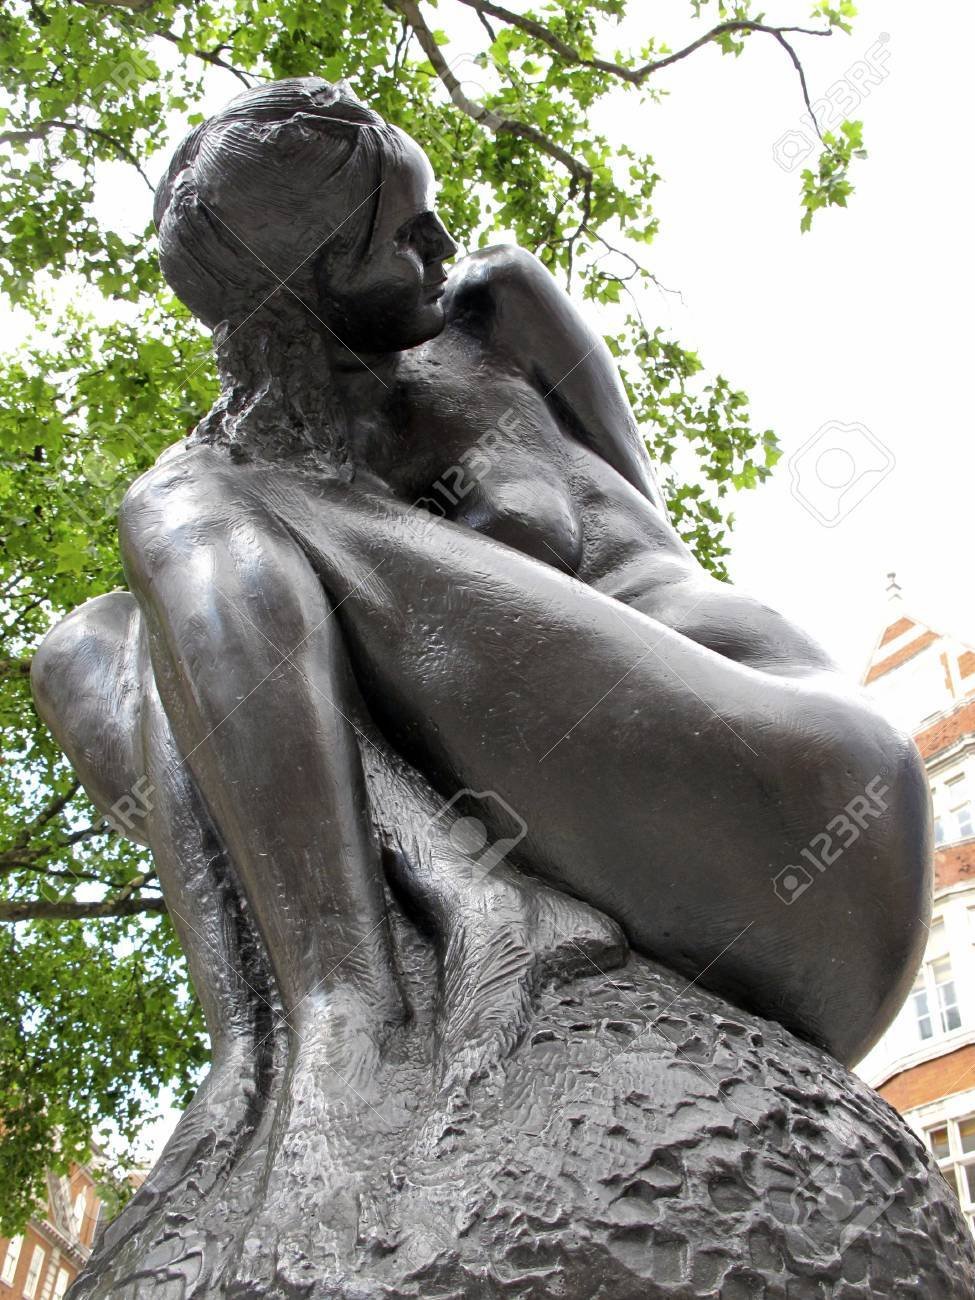 London,Mayfair UK, June 24 2011:Statue of Naked Lady by Italian artist Emilio Greco. Stock Photo - 9890411